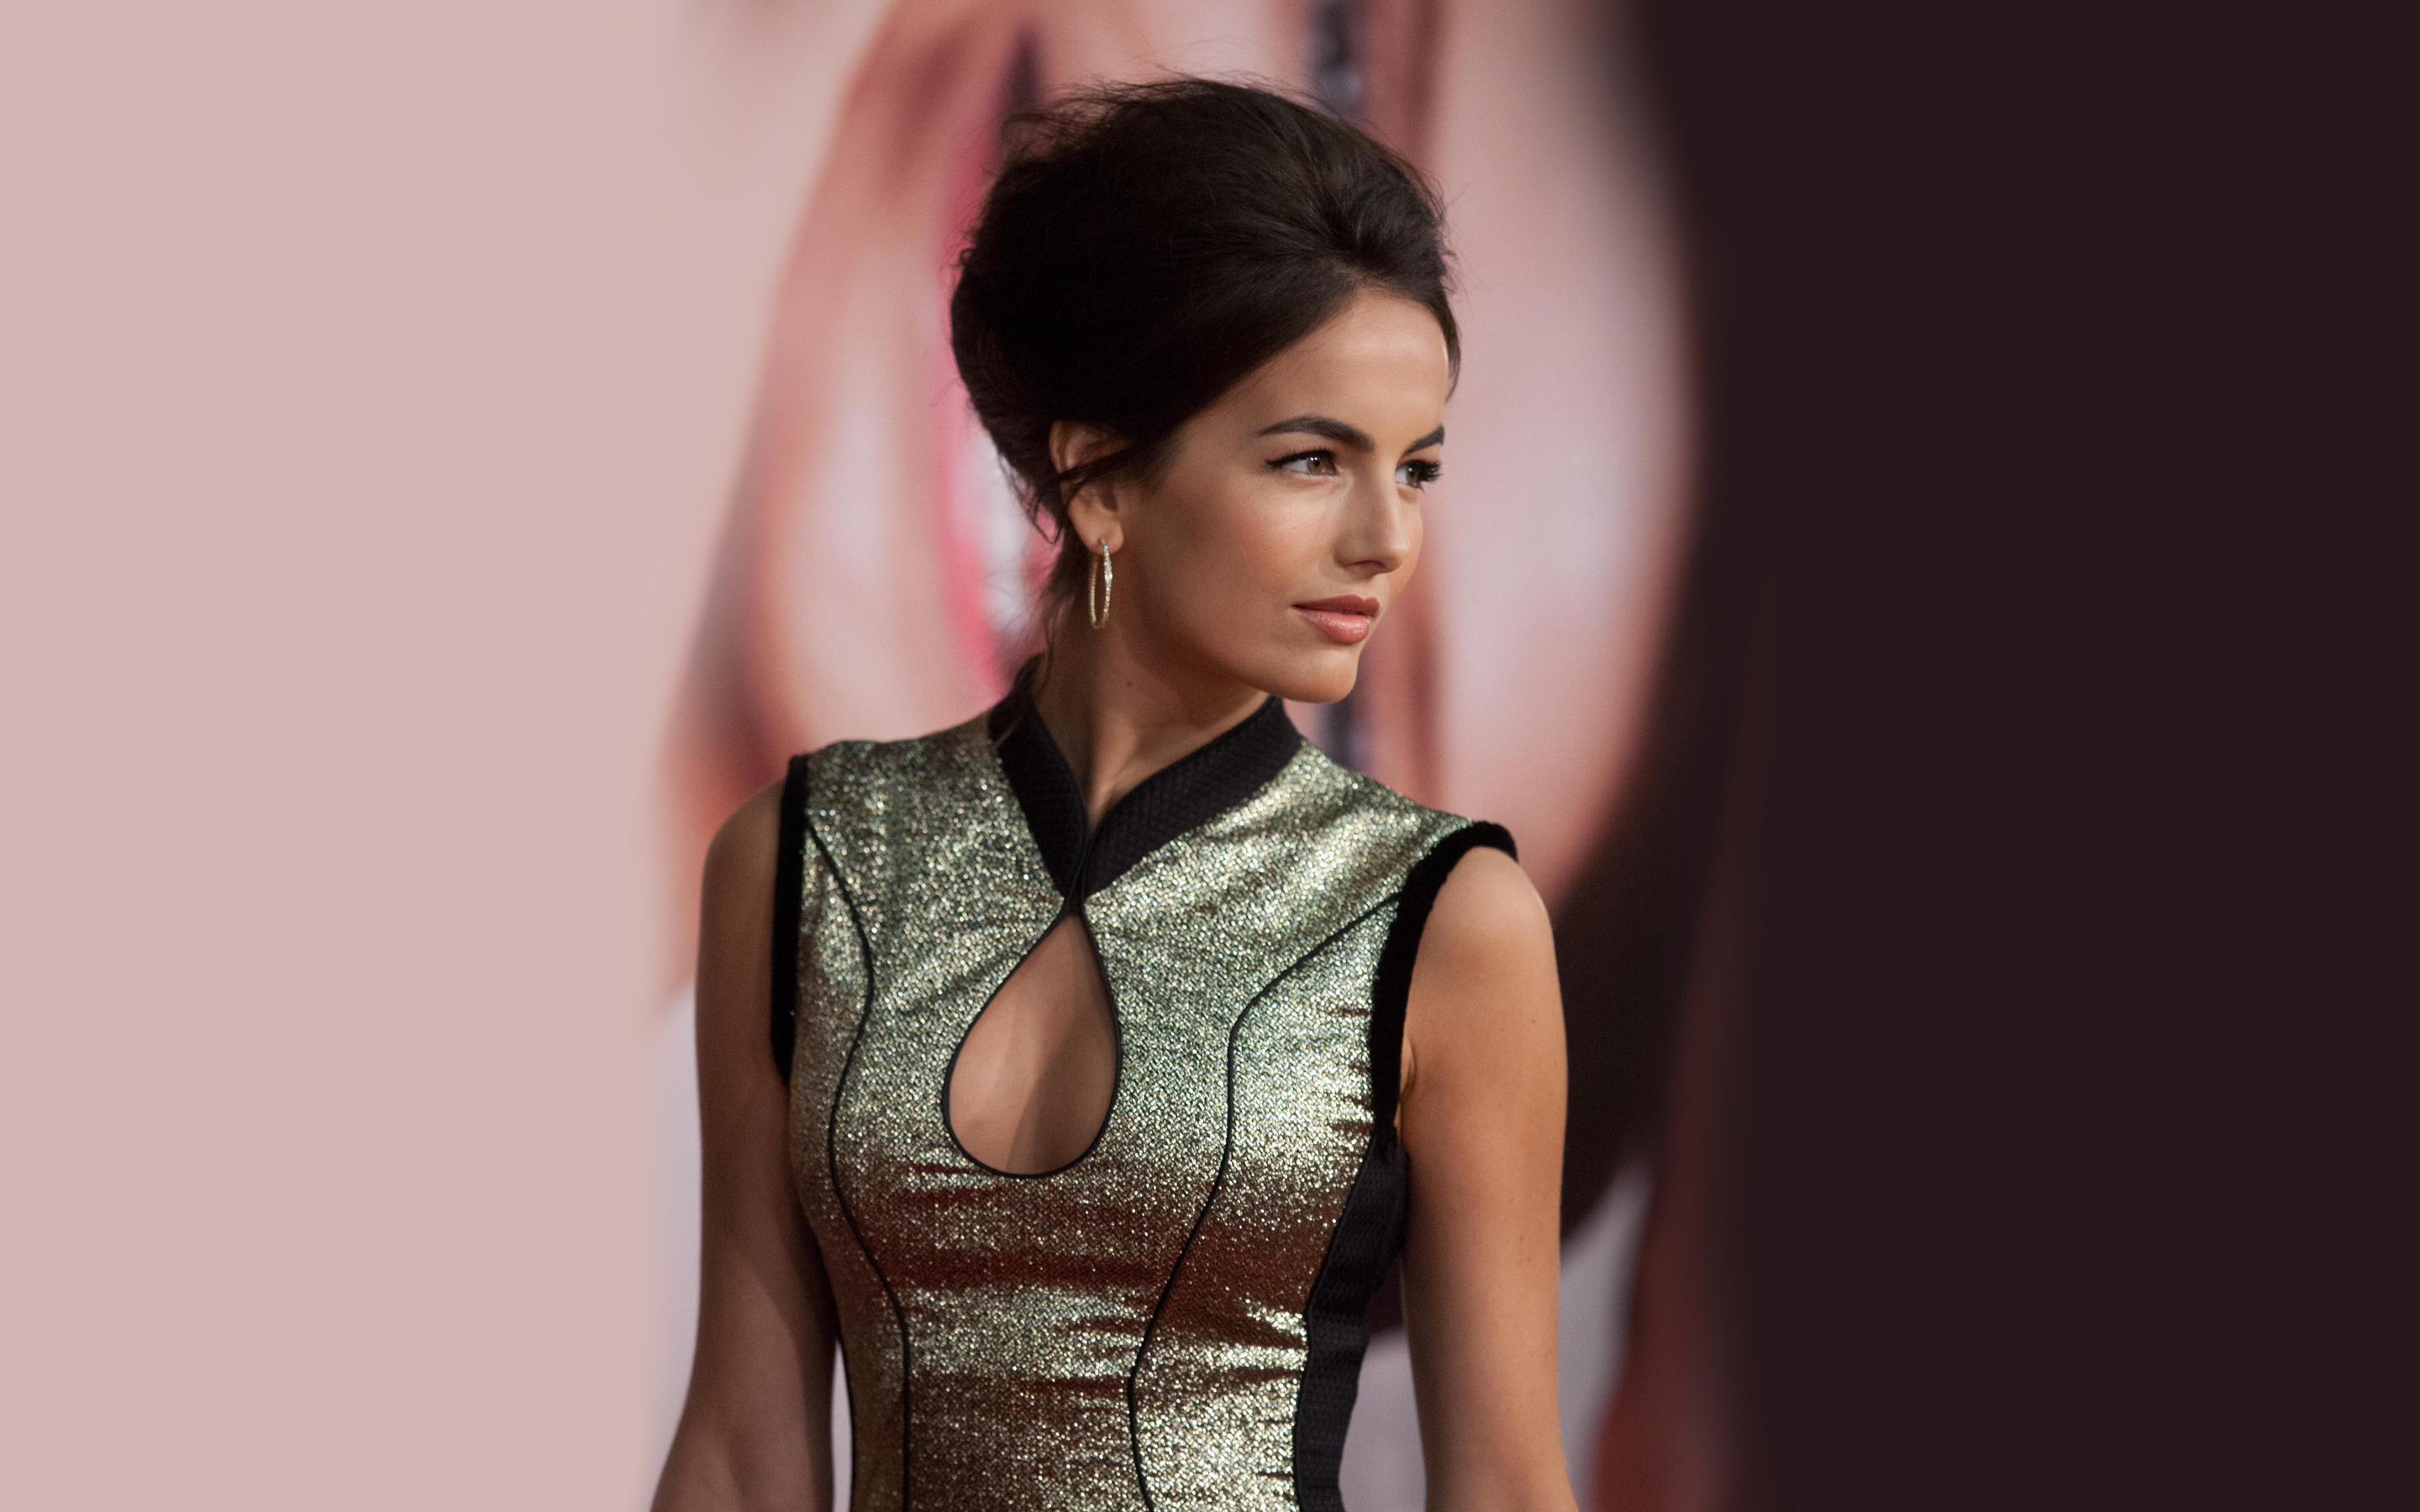 2880x1800 - Camilla Belle Wallpapers 3